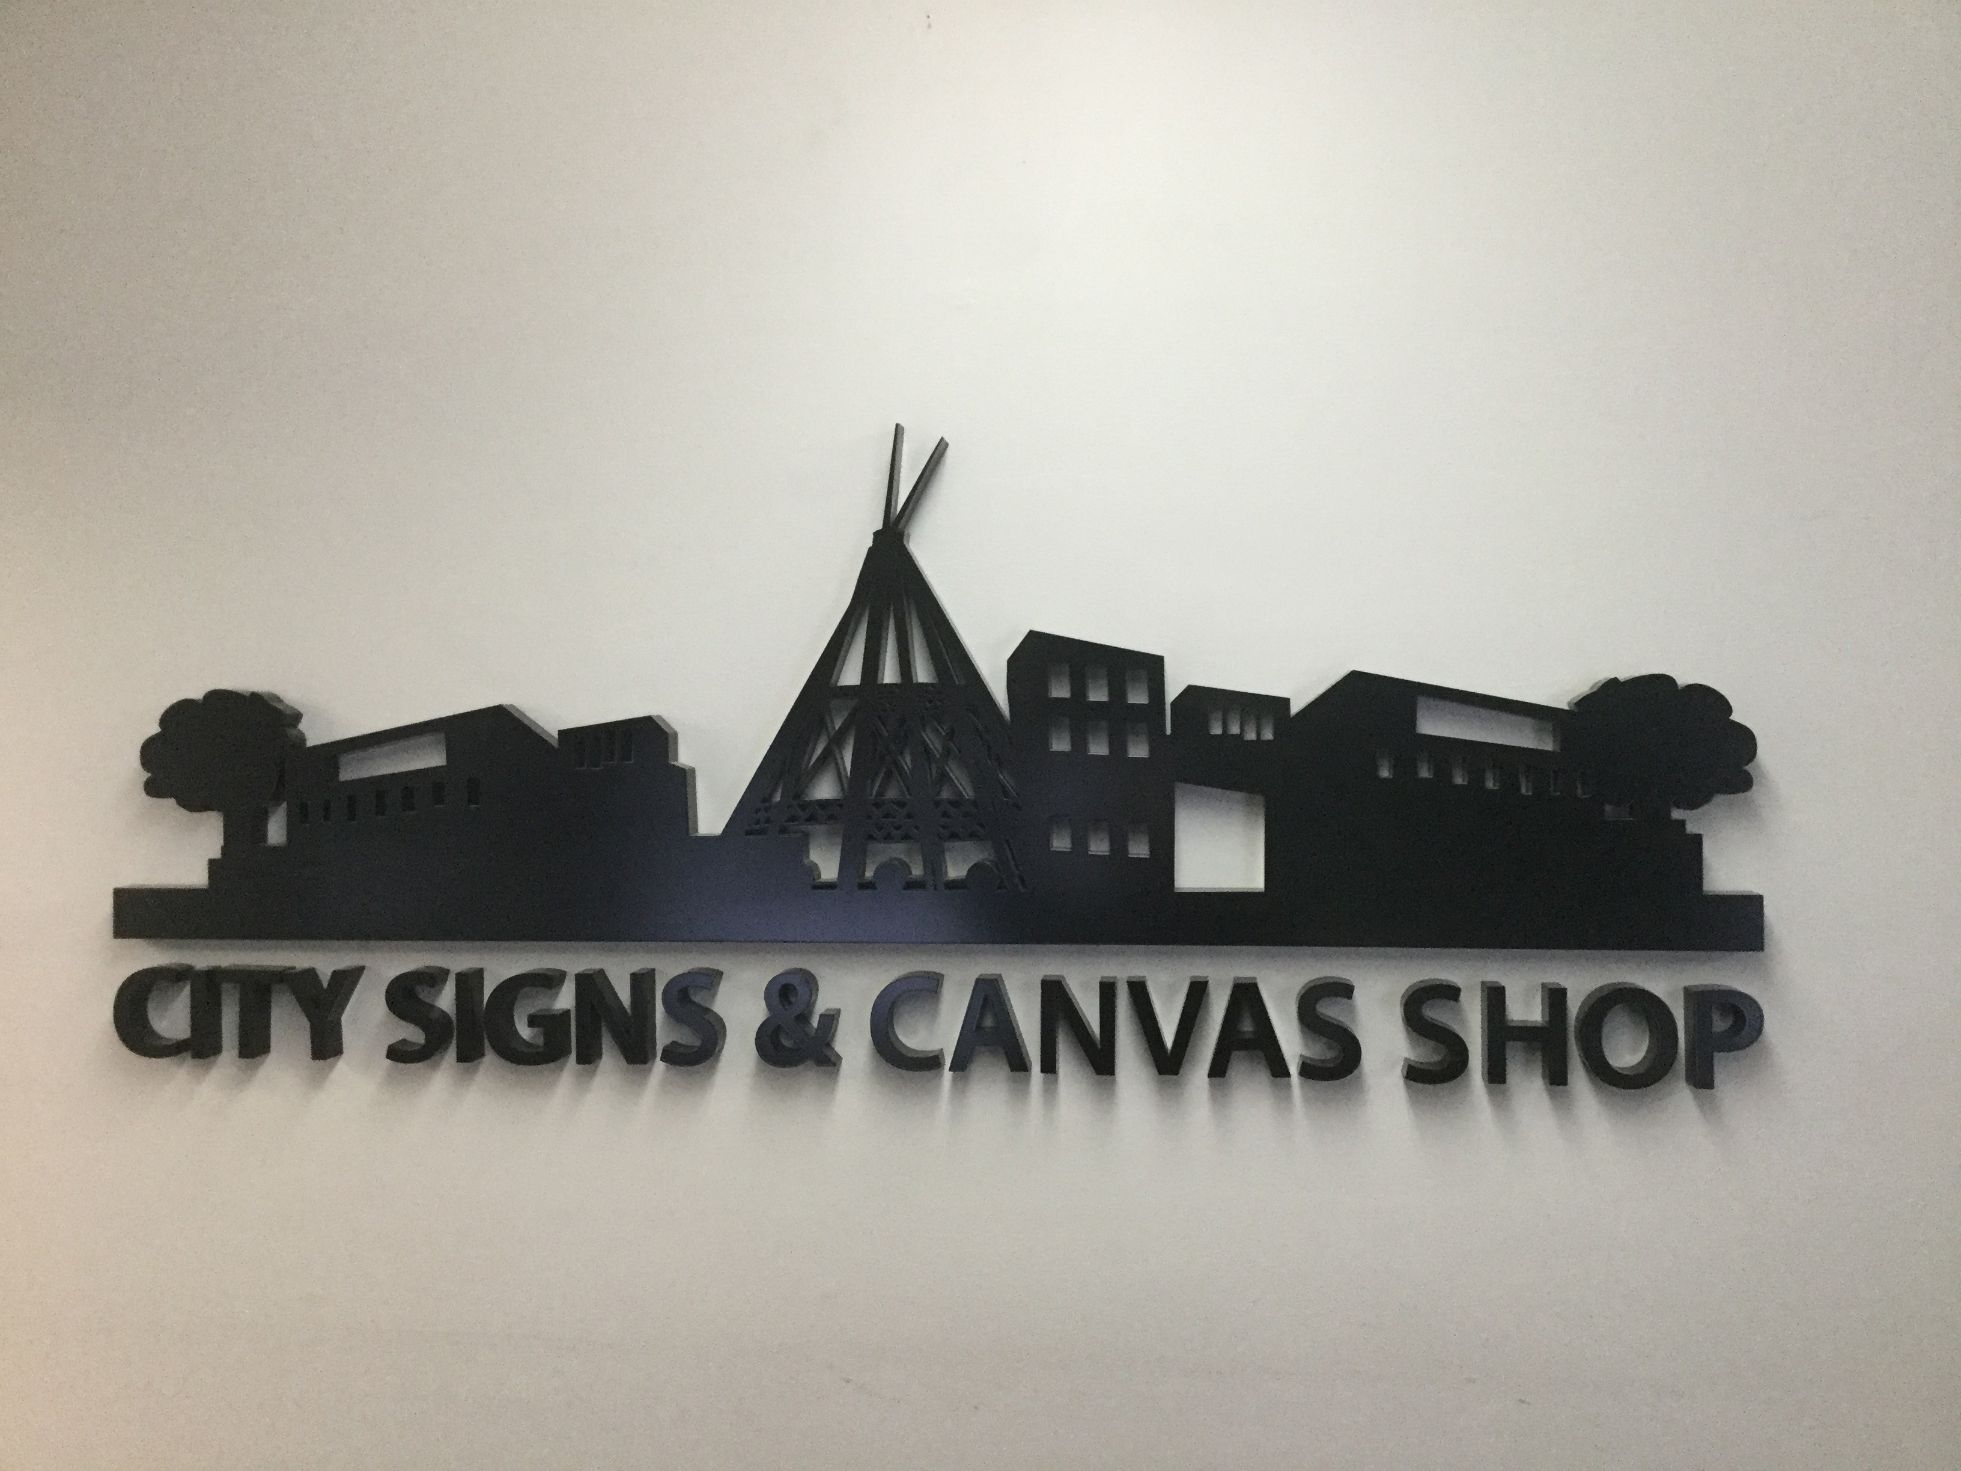 City signs & canvas shop Letter signage